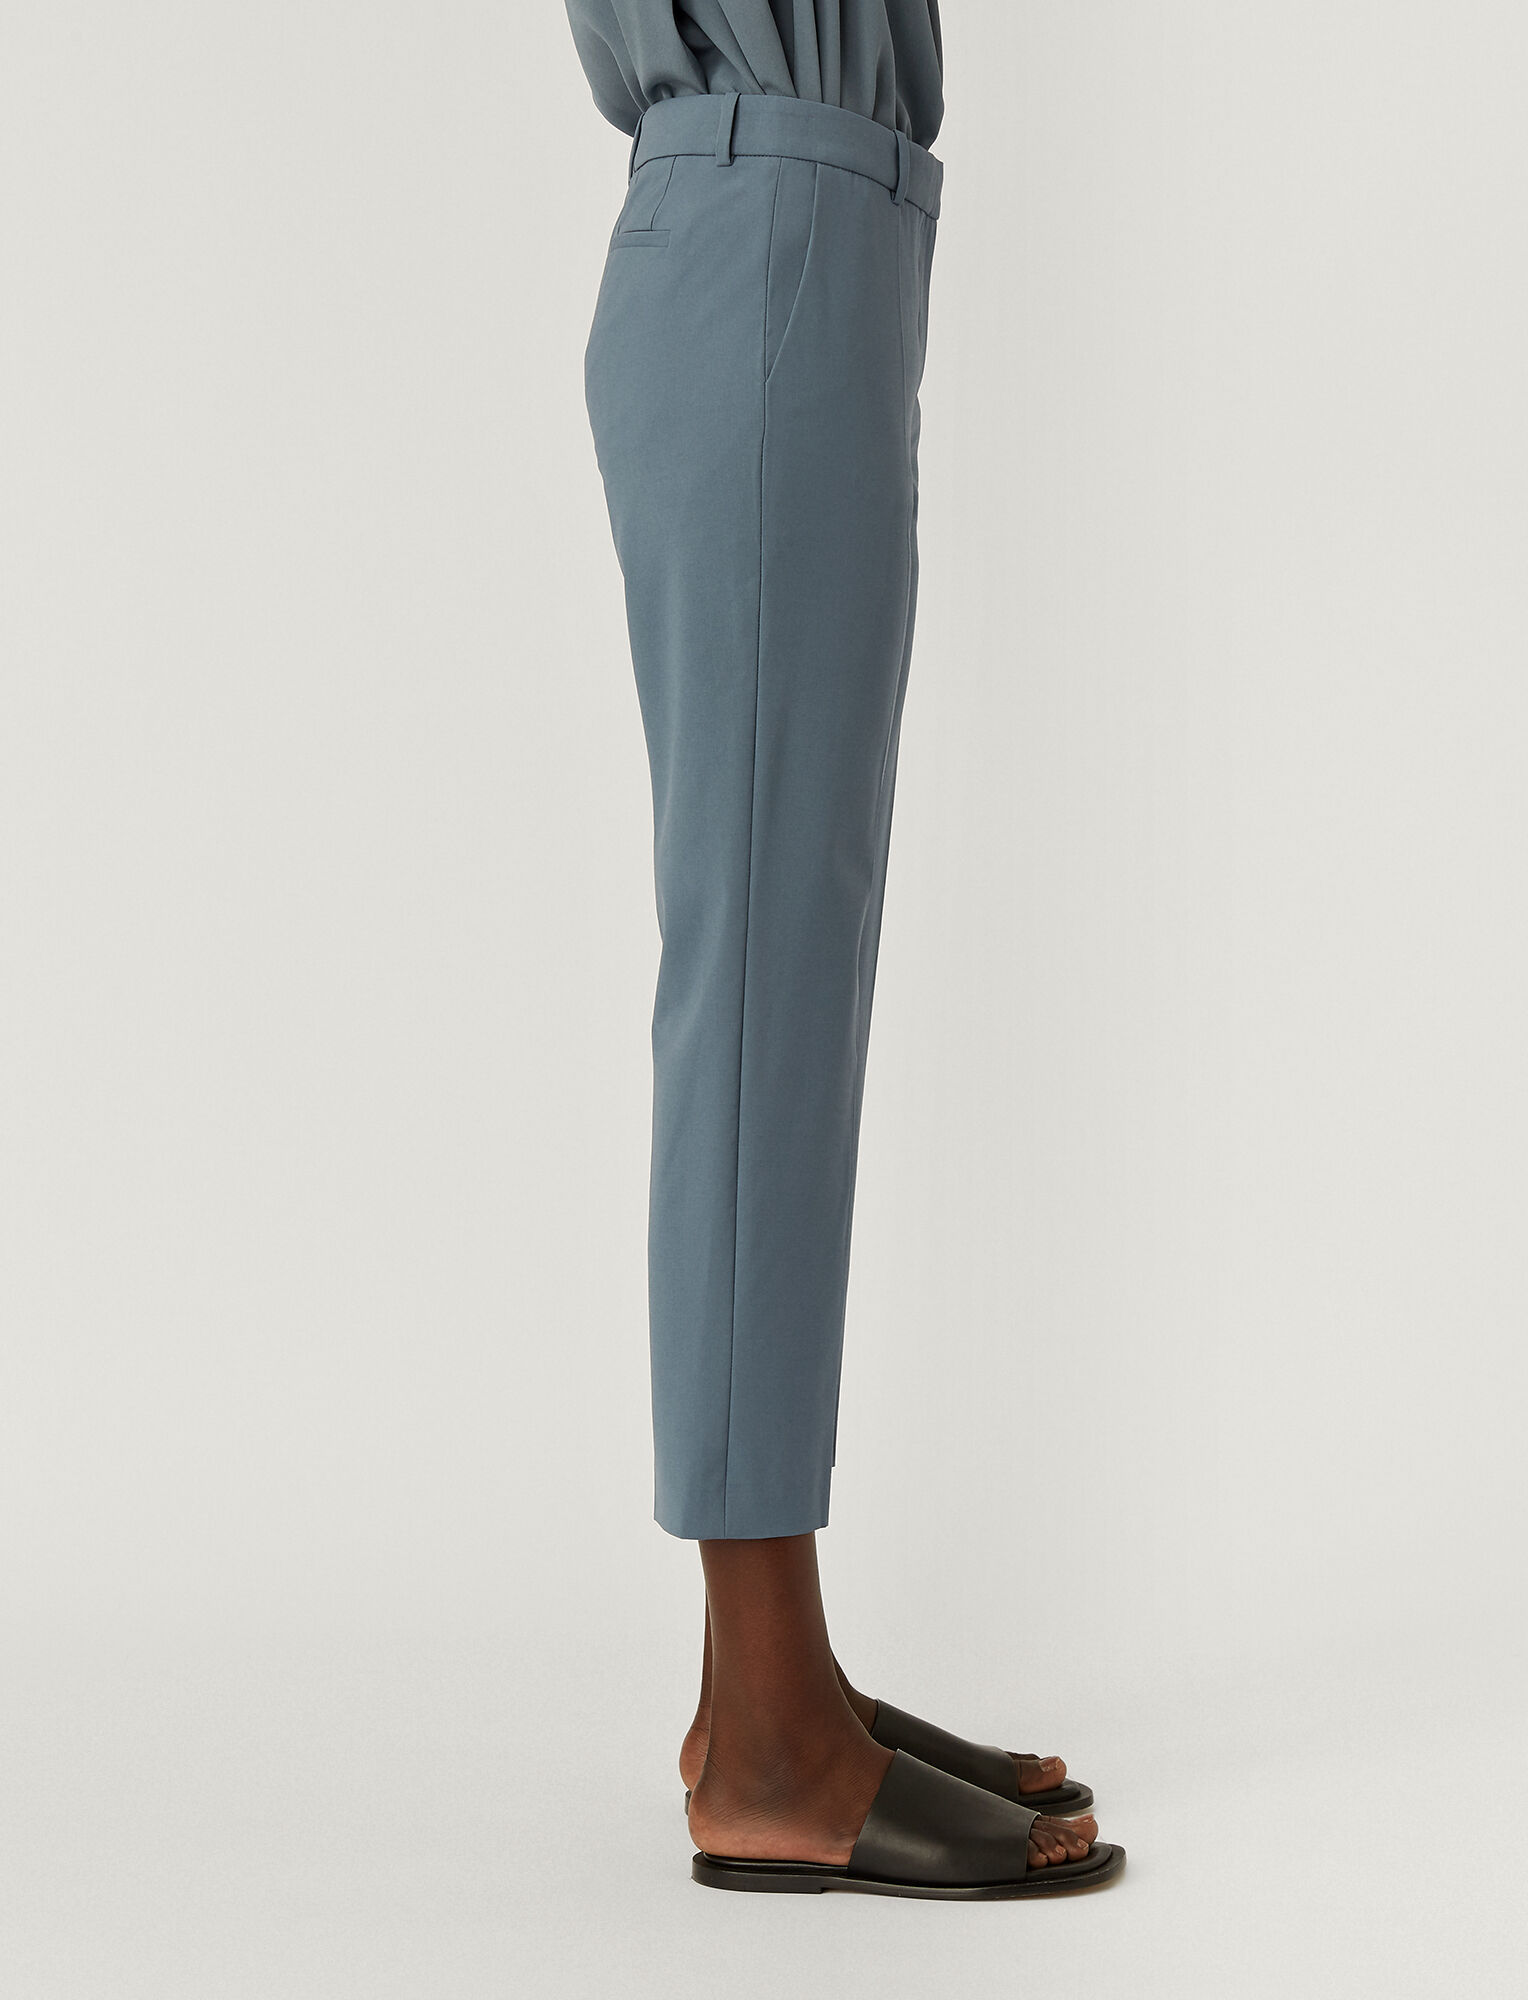 Joseph, Light Wool Suiting Tape Trousers, in BLUE STEEL